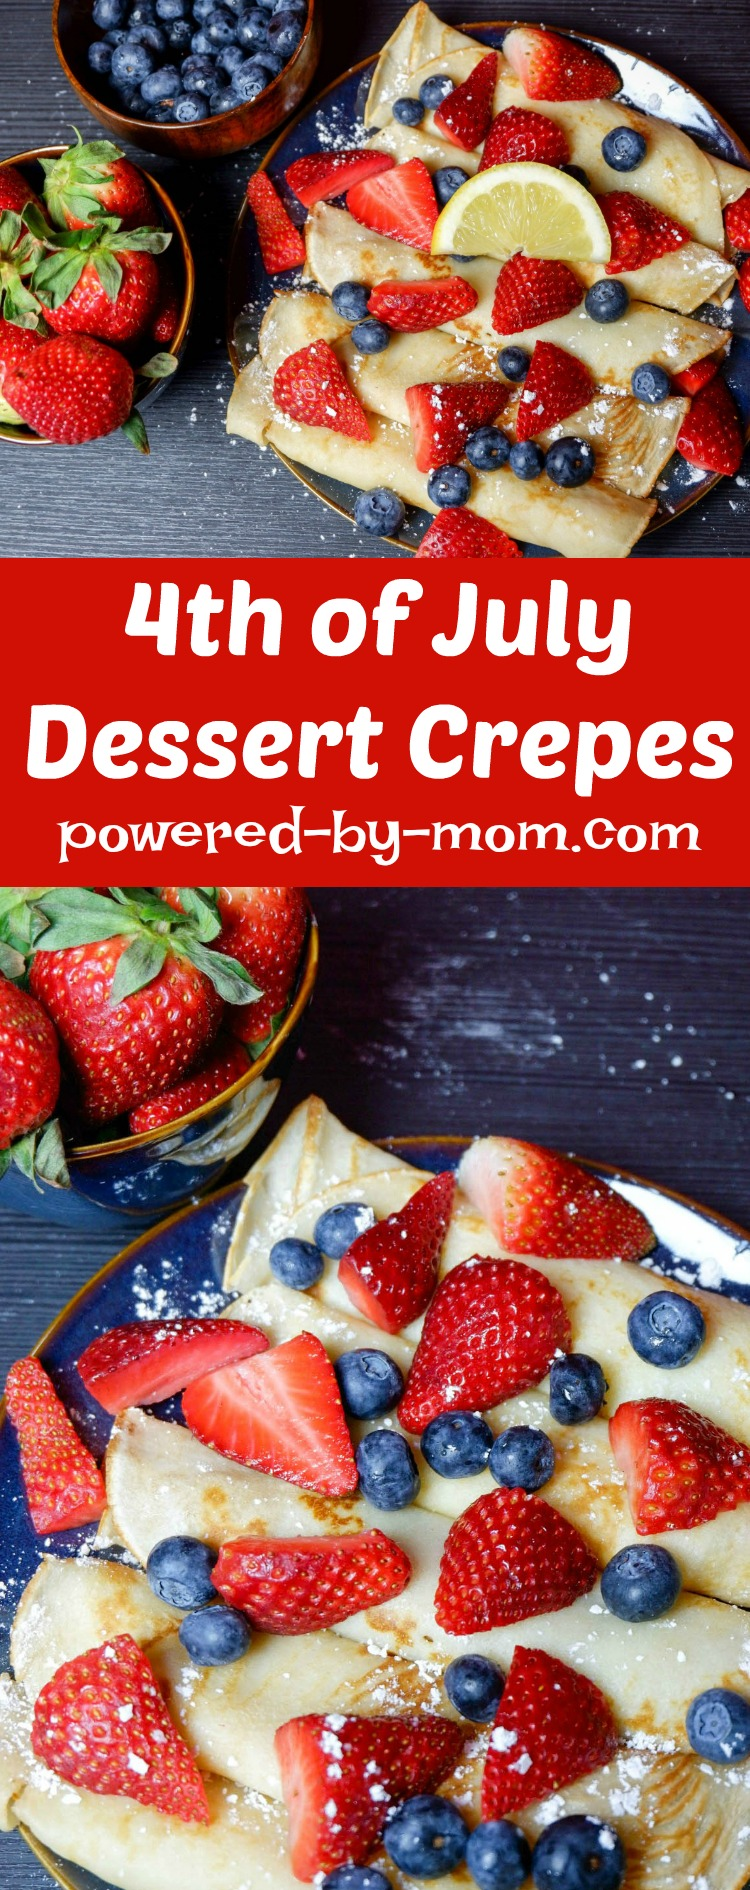 Crepes are delicious to serve for dessert, breakfast or special occasions. Even dinner for savory crepes! Perfect for 4th of July!